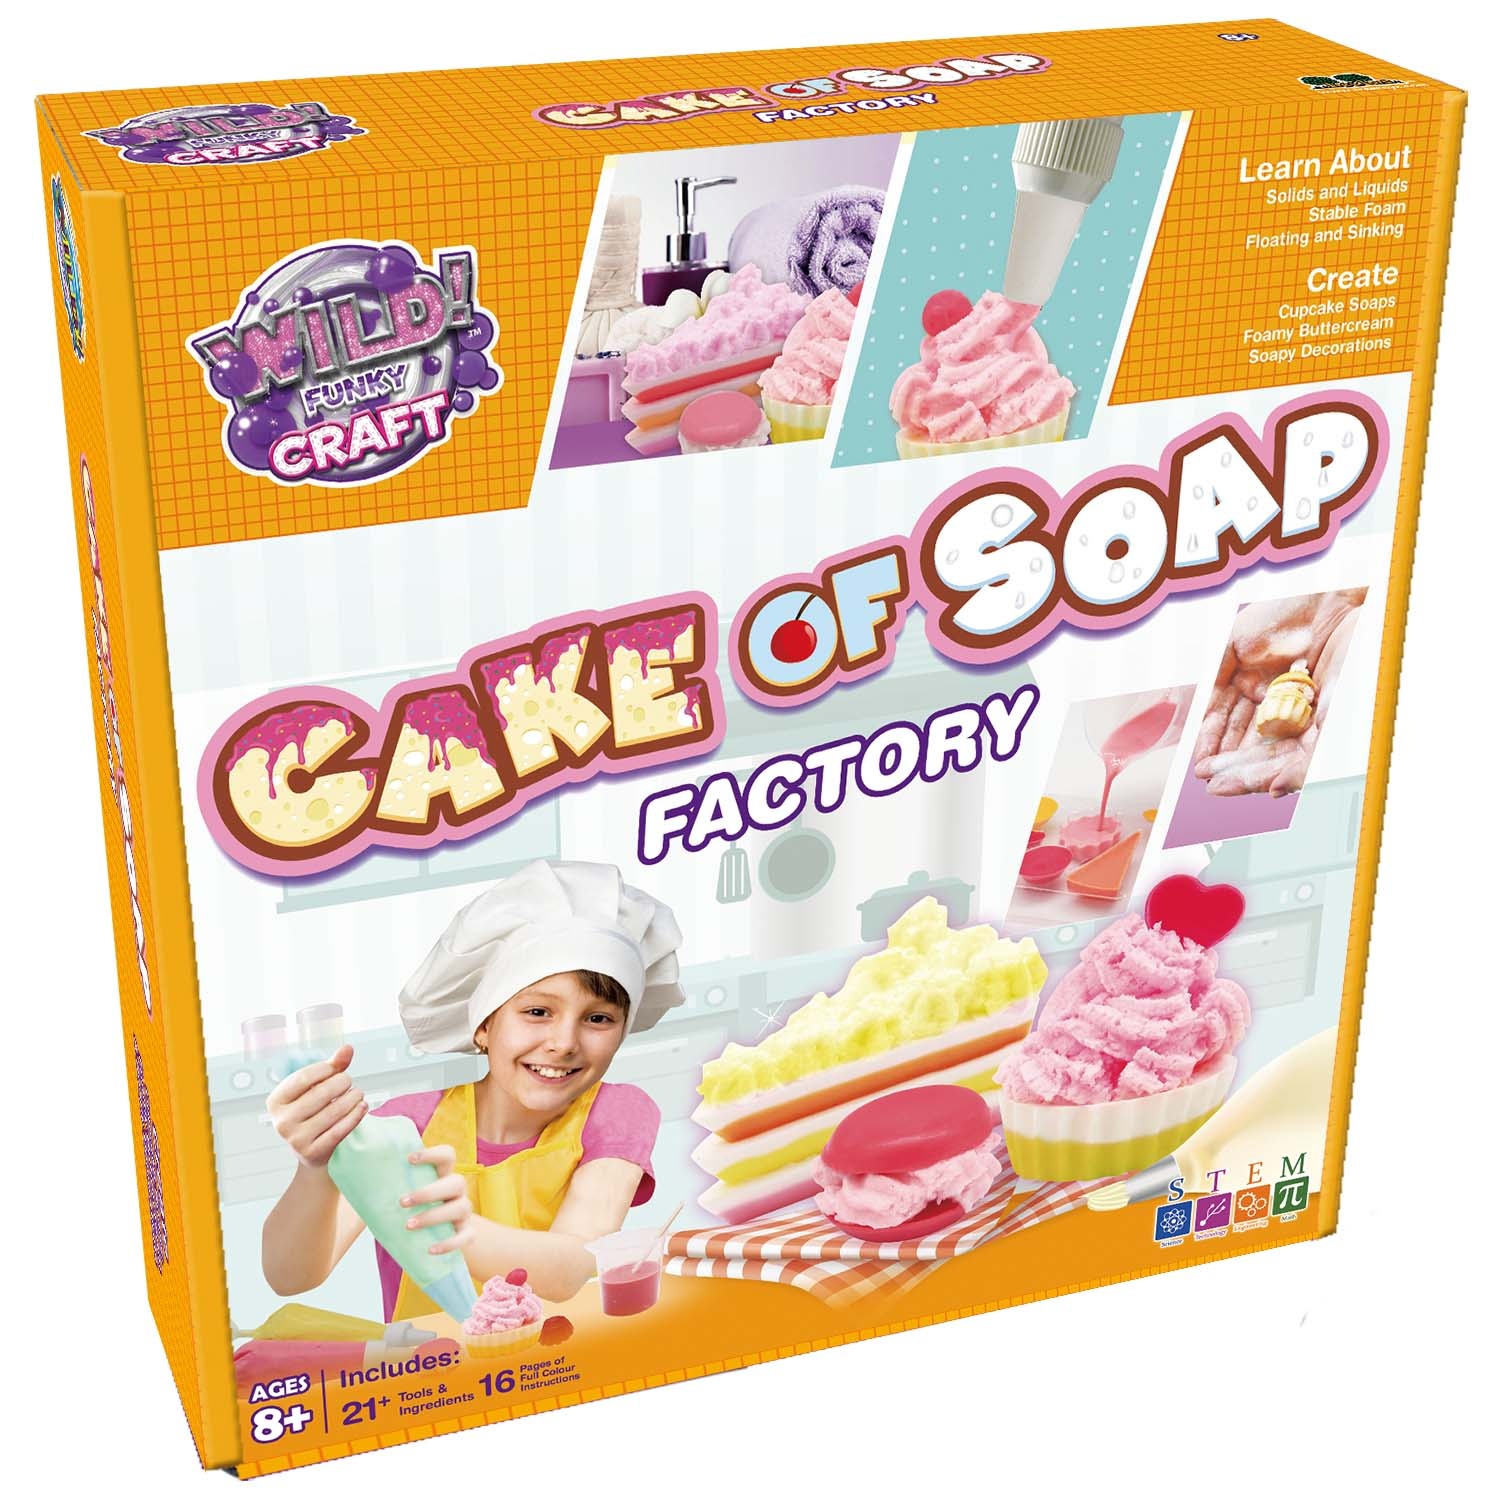 Cake of Soap Factory